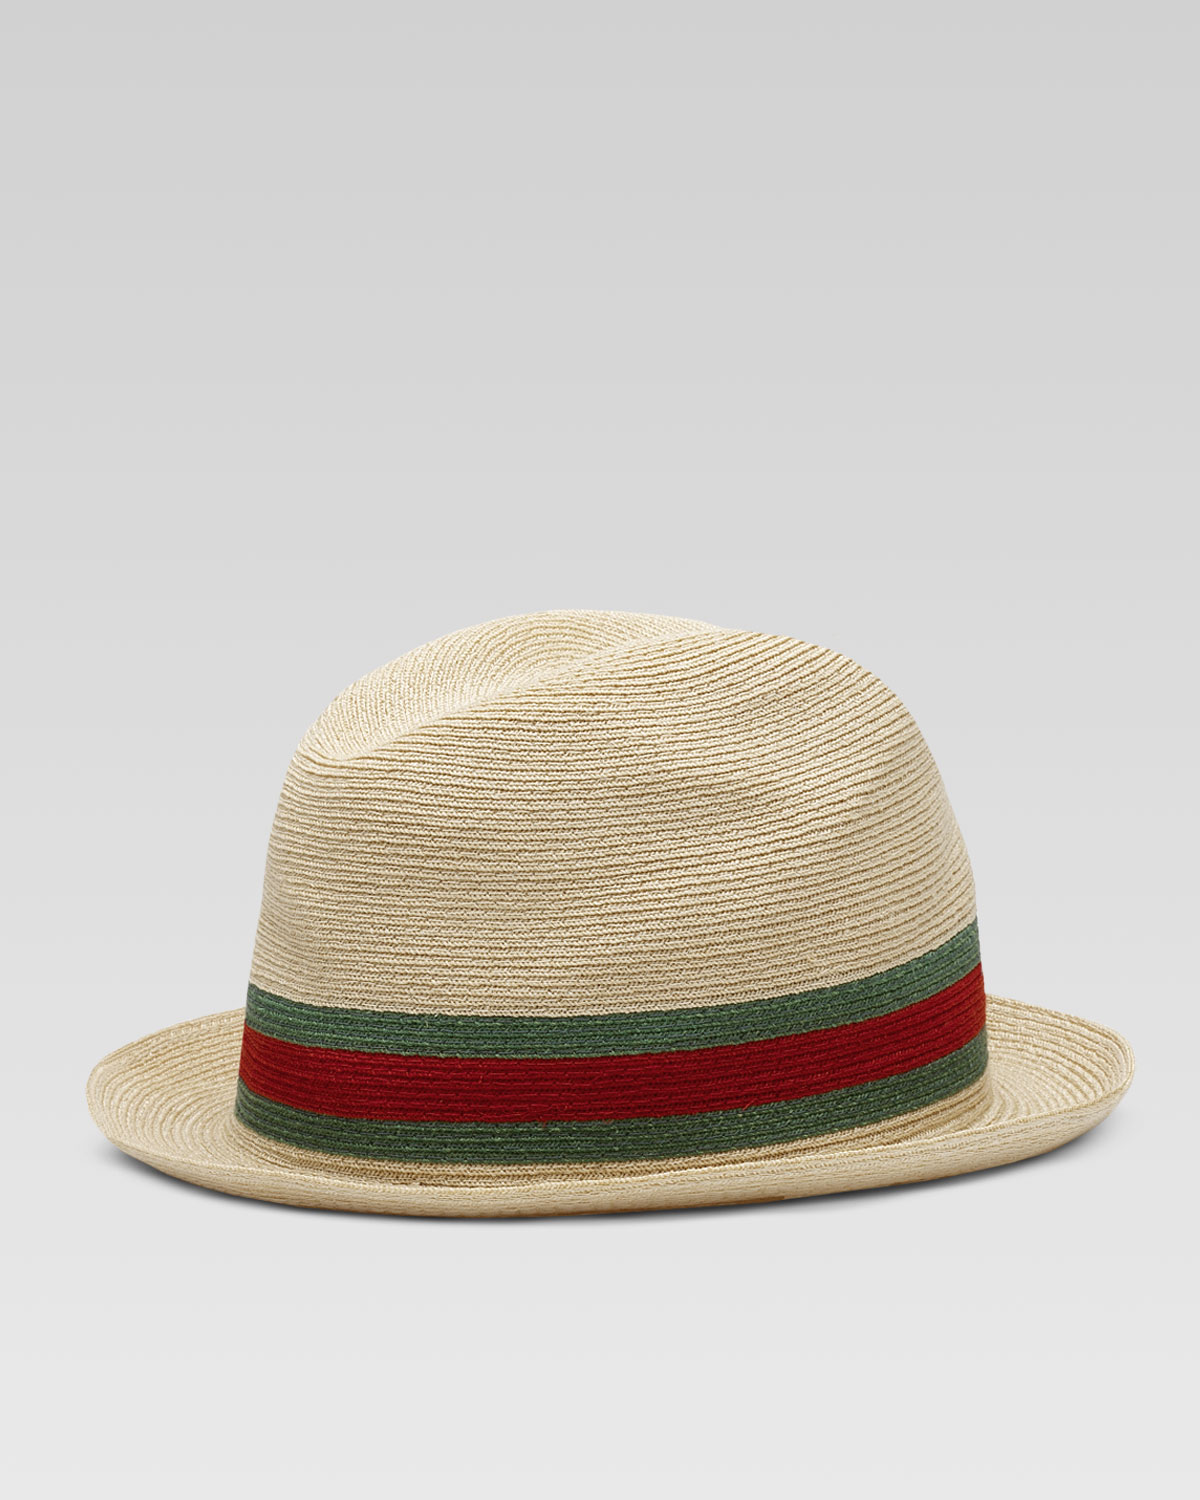 608ea64550d Lyst - Gucci Fedora Straw Hat in Natural for Men